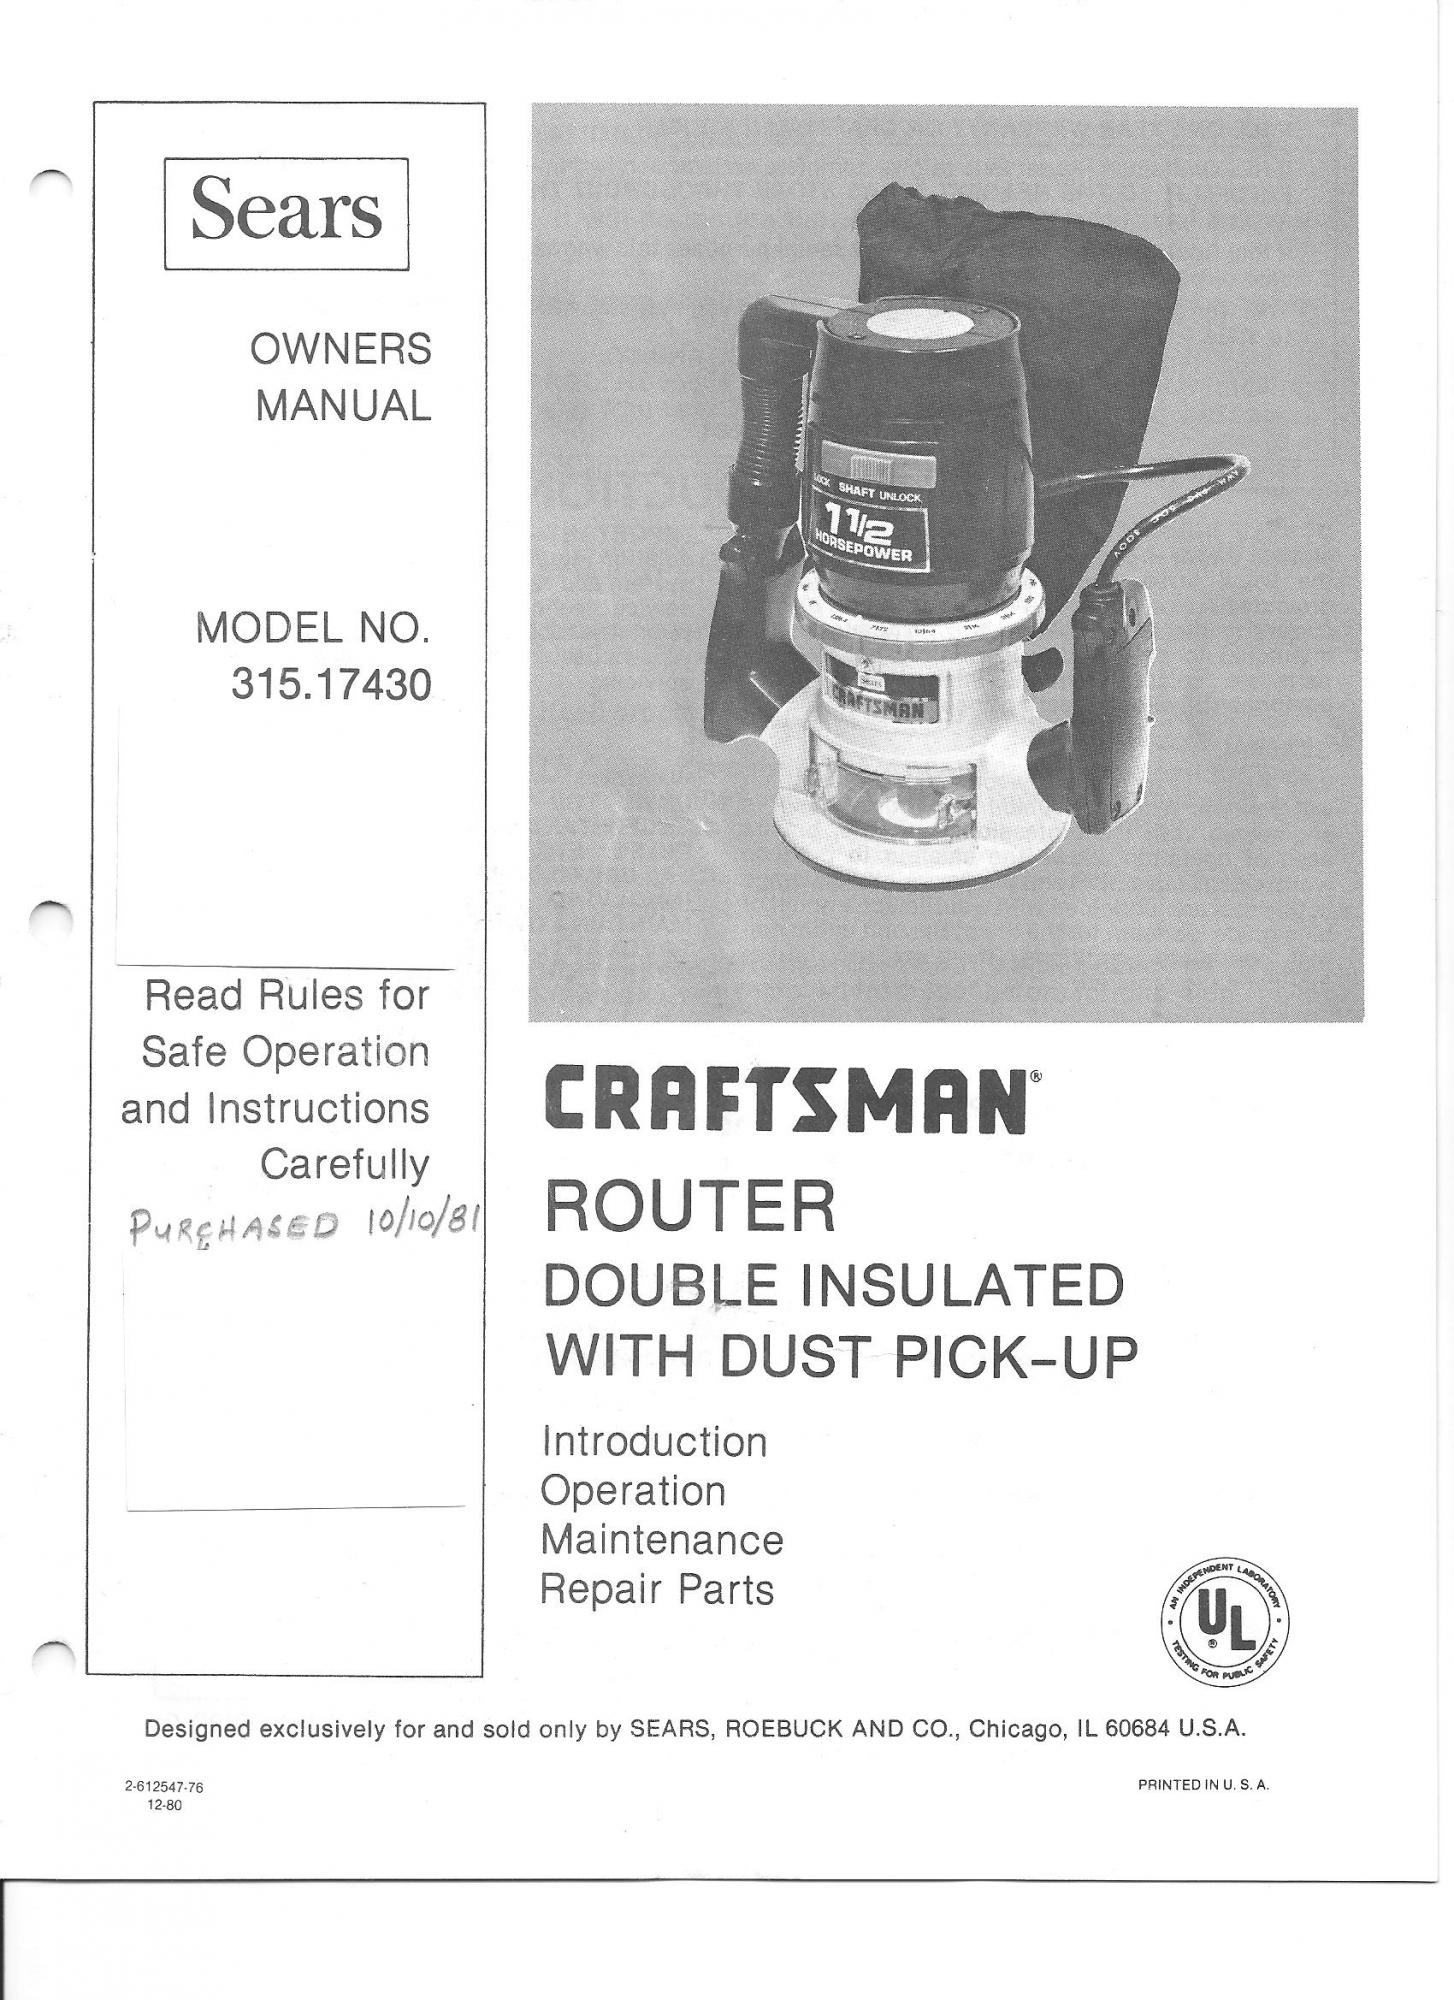 router craftsman manual 315 17430 router forums rh routerforums com sears craftsman router model 315 manual Sears Router Table Parts